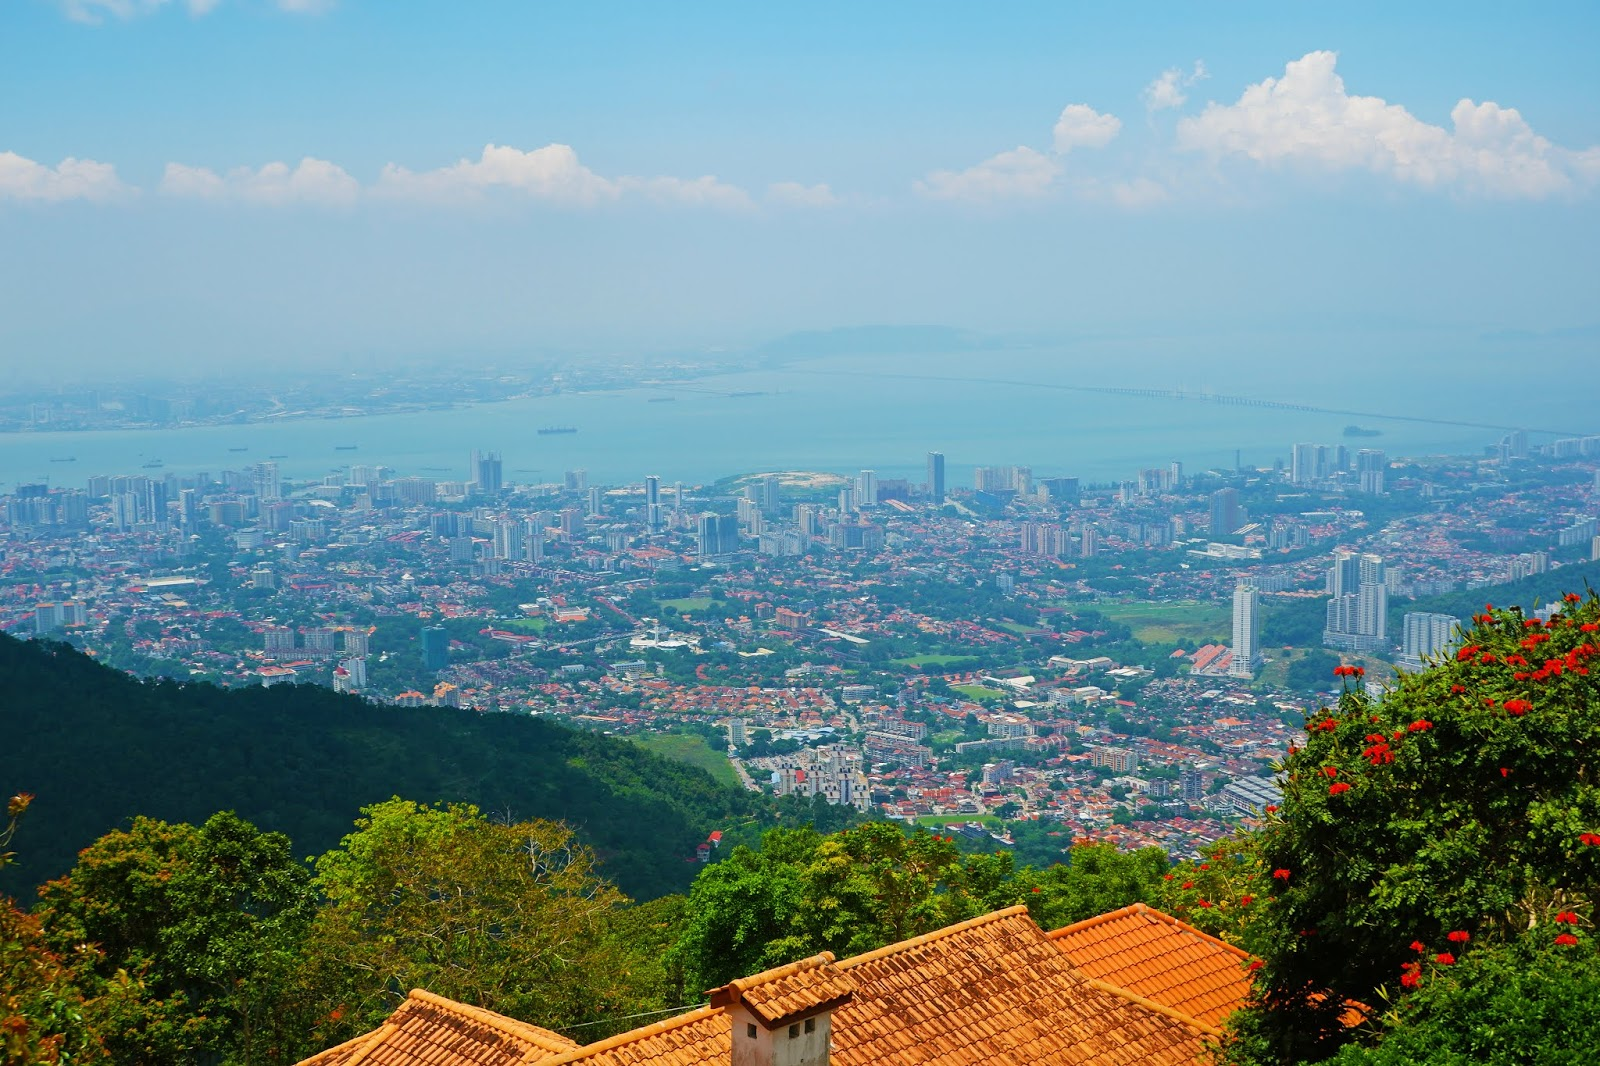 Penang-view-from-above.jpg